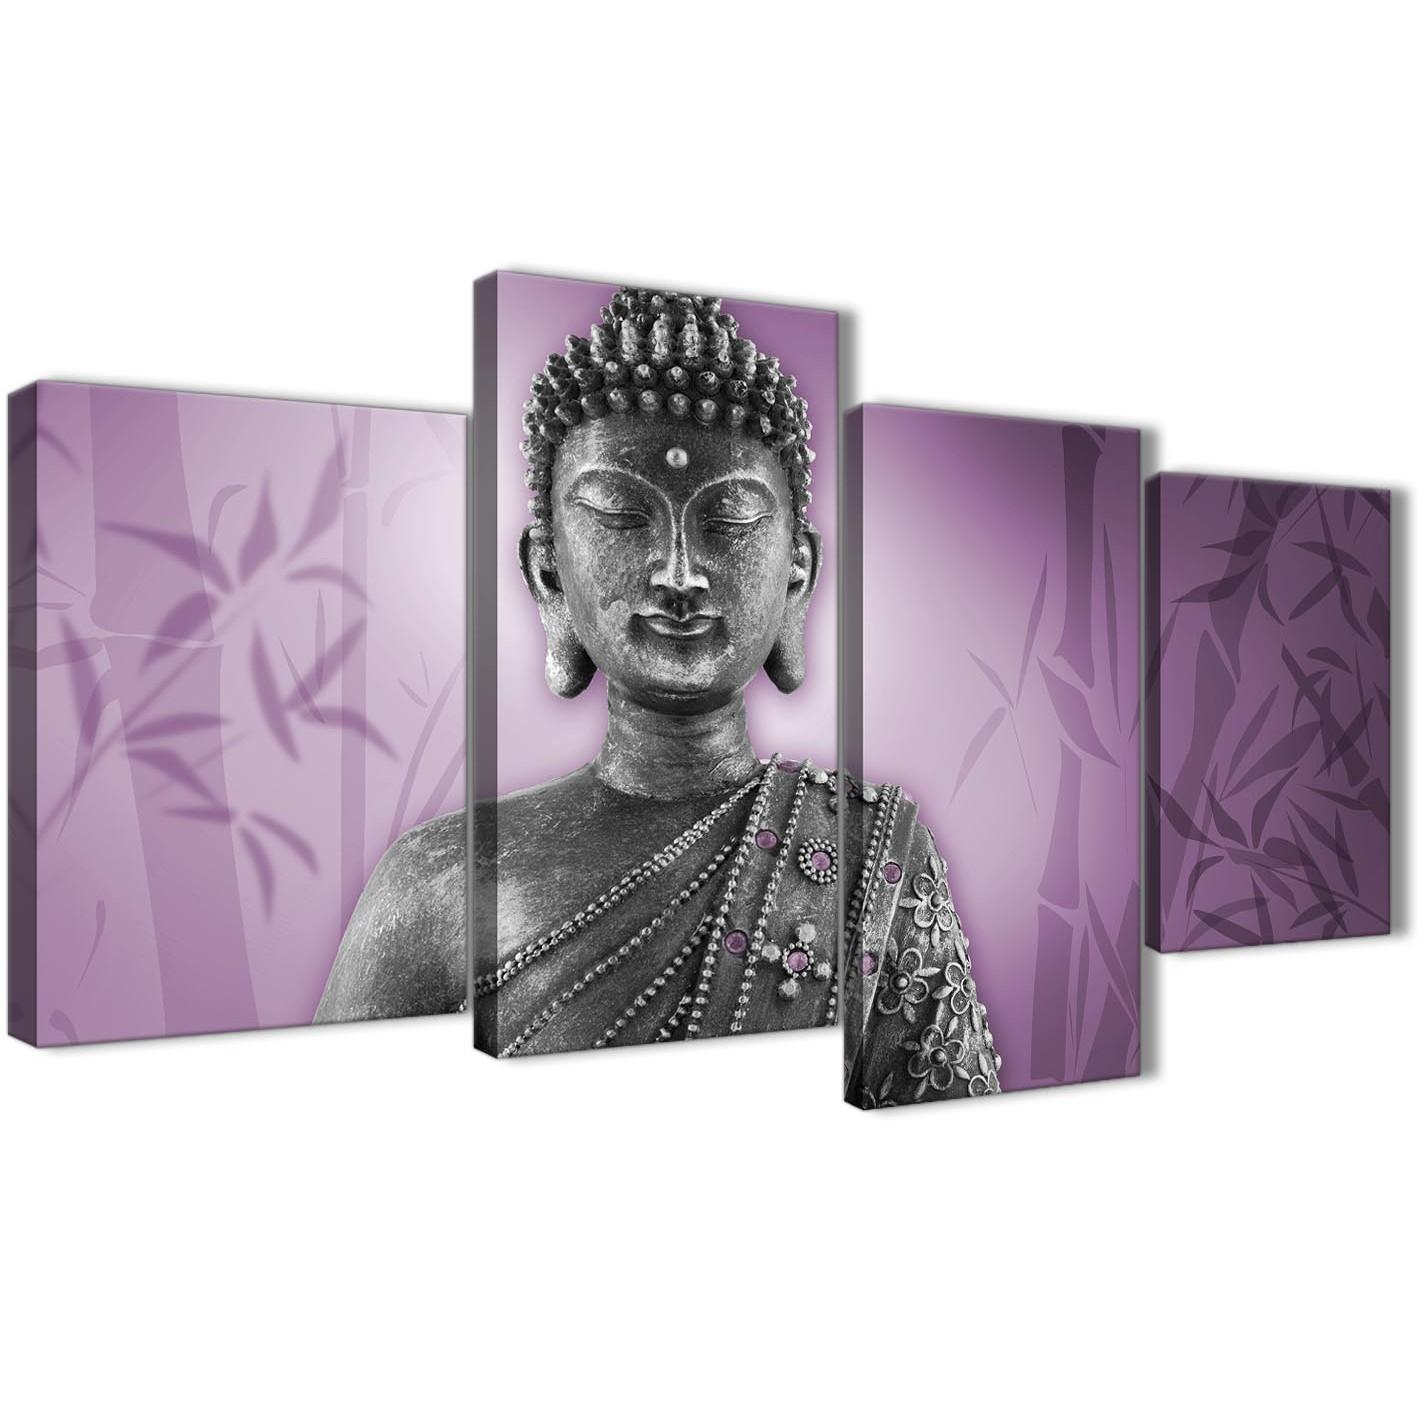 Large Purple And Grey Silver Canvas Art Prints Of Buddha – Multi 4 Within Silver Buddha Wall Art (Image 10 of 20)